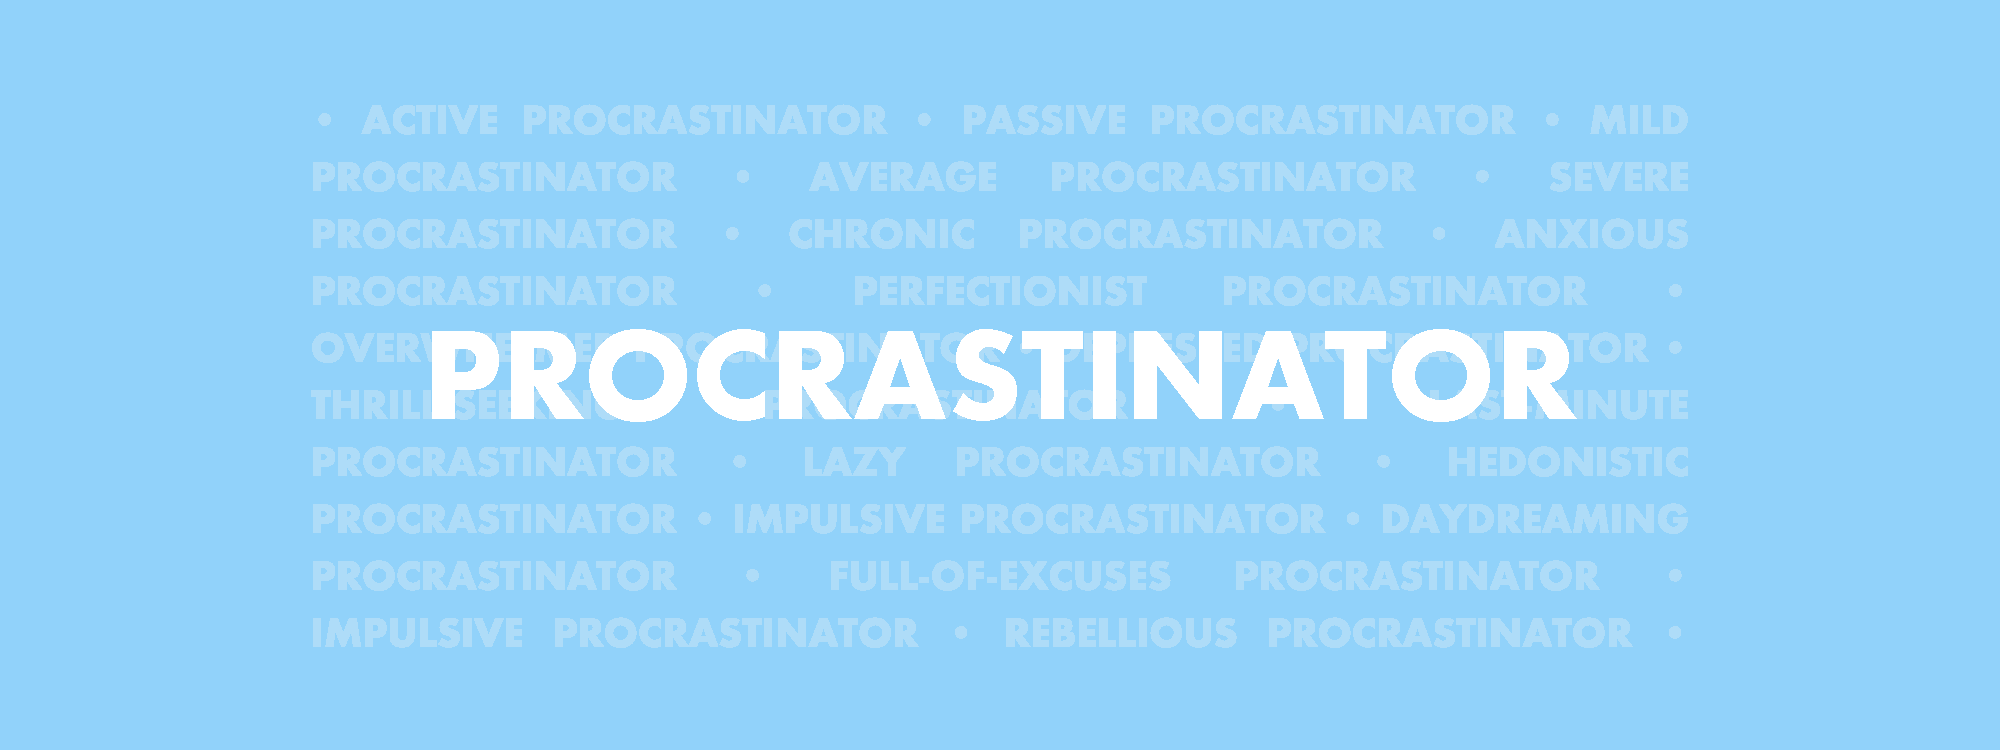 Procrastinator: A Guide to Understanding the People Who